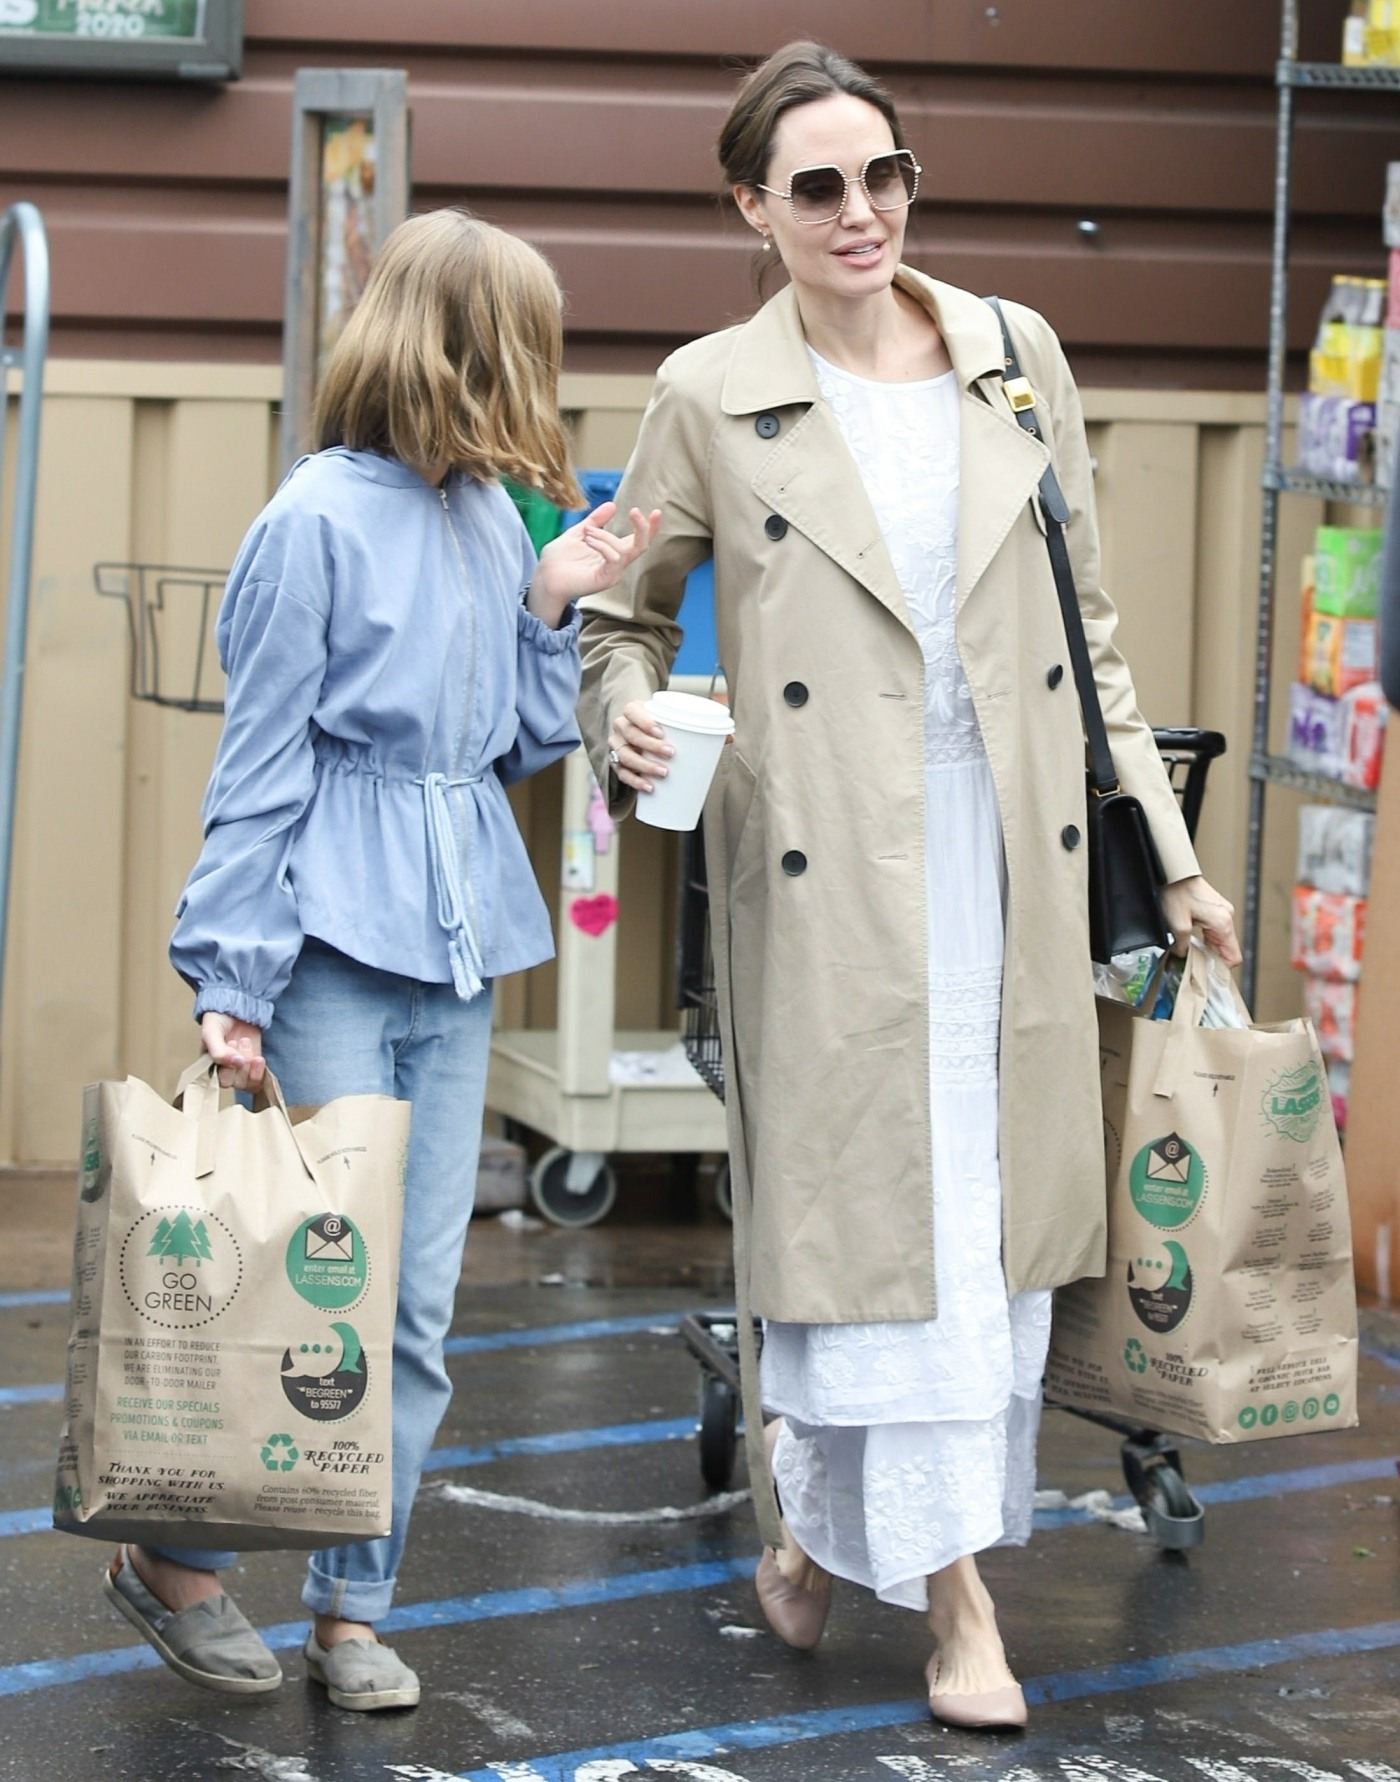 Angelina Jolie goes shopping at Lassens amid coronavirus pandemic